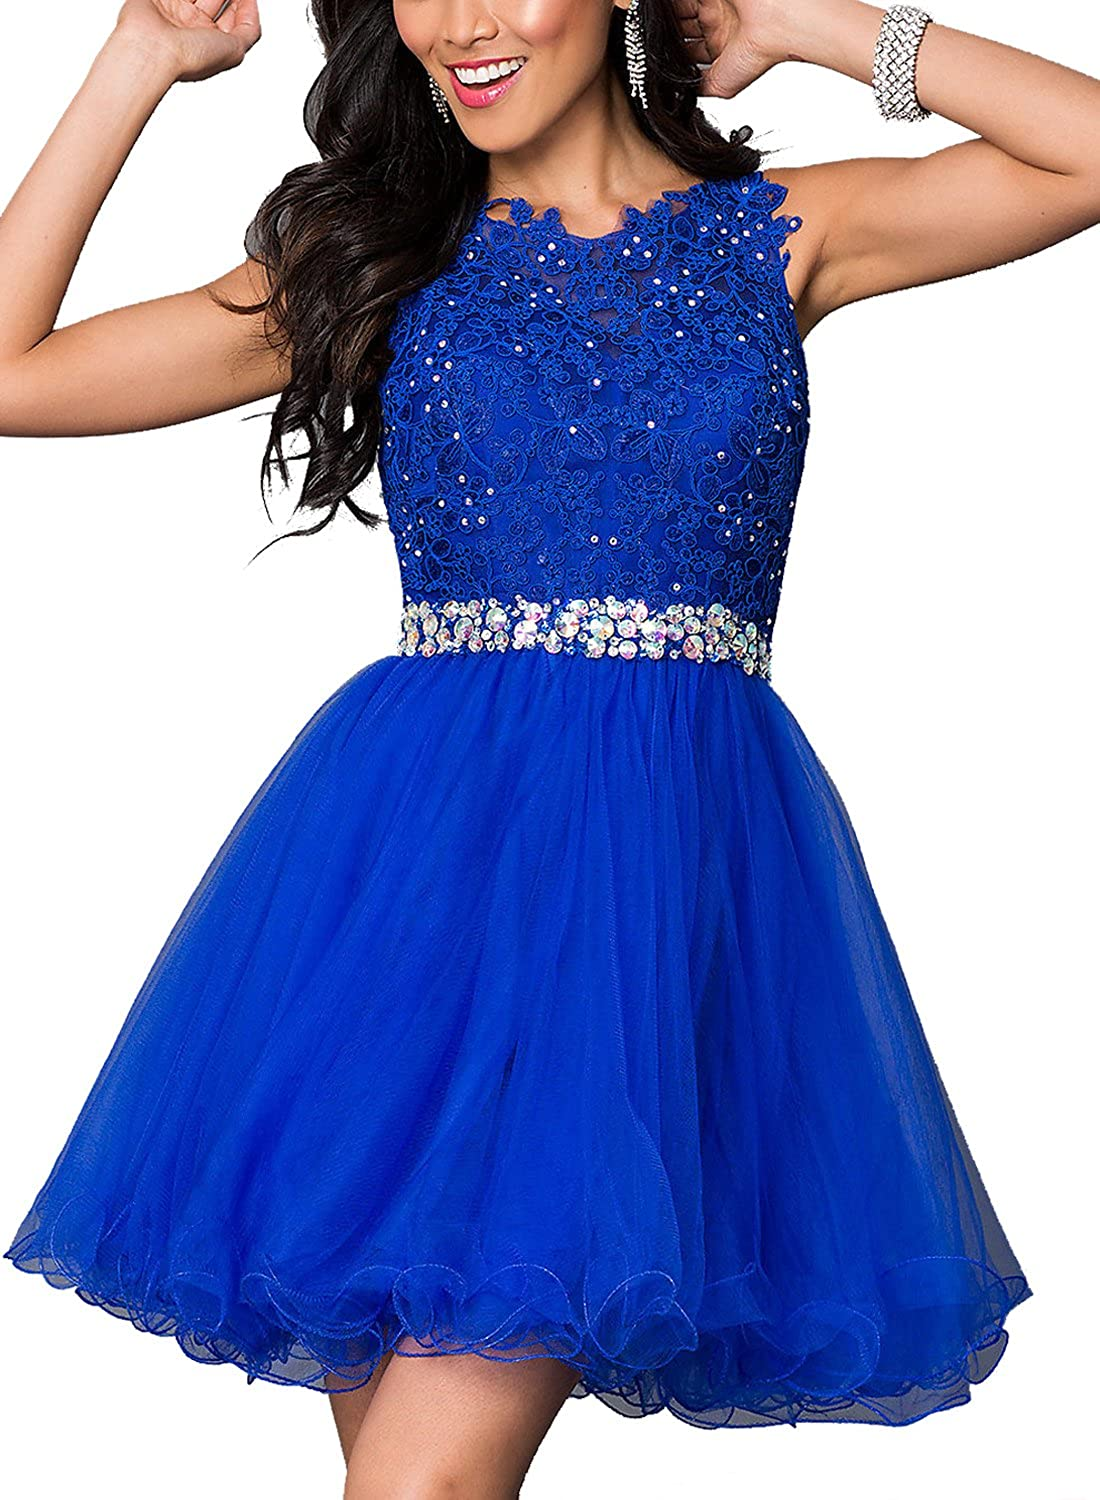 Now and Forever Juniors Birthday Dress Homecoming Dress Short